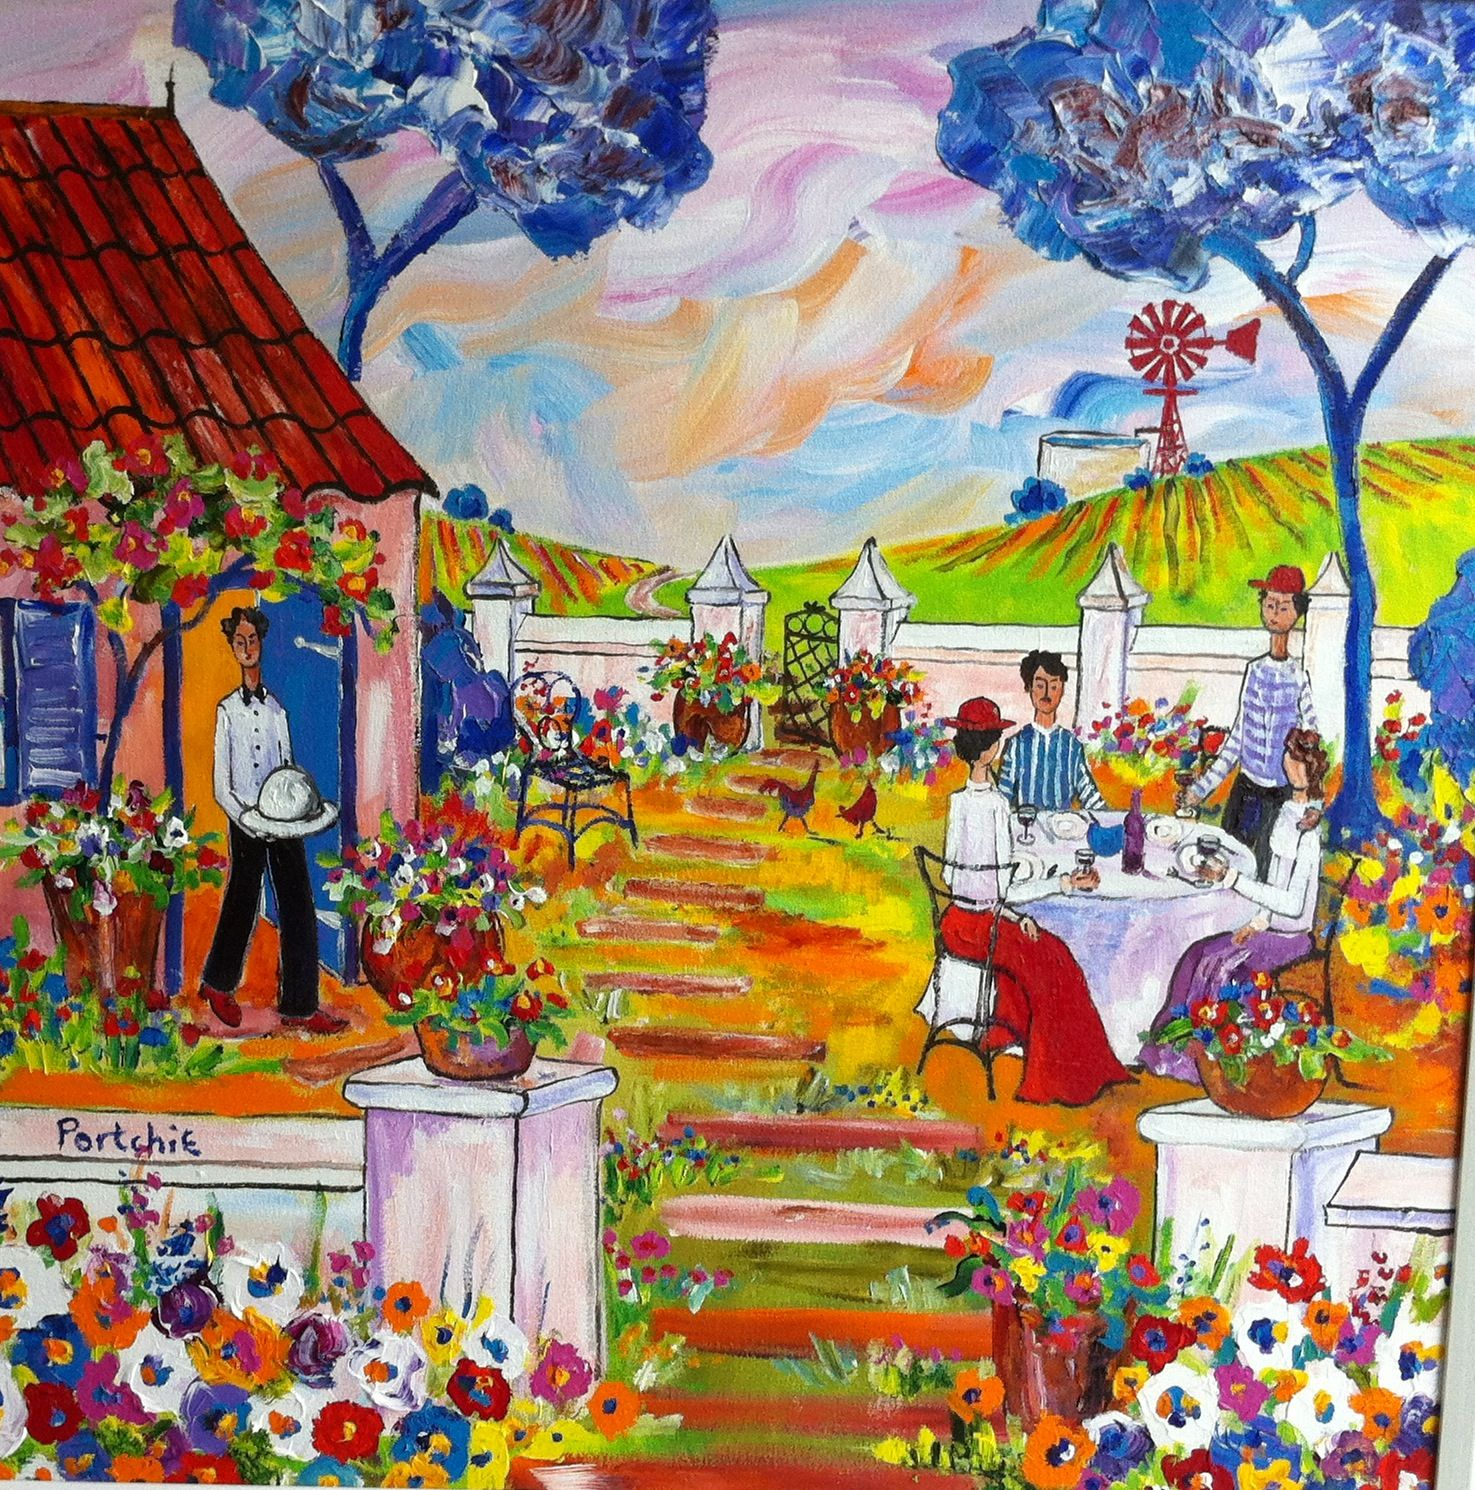 Pin by Tinka Storm on Portchie South african art, Africa